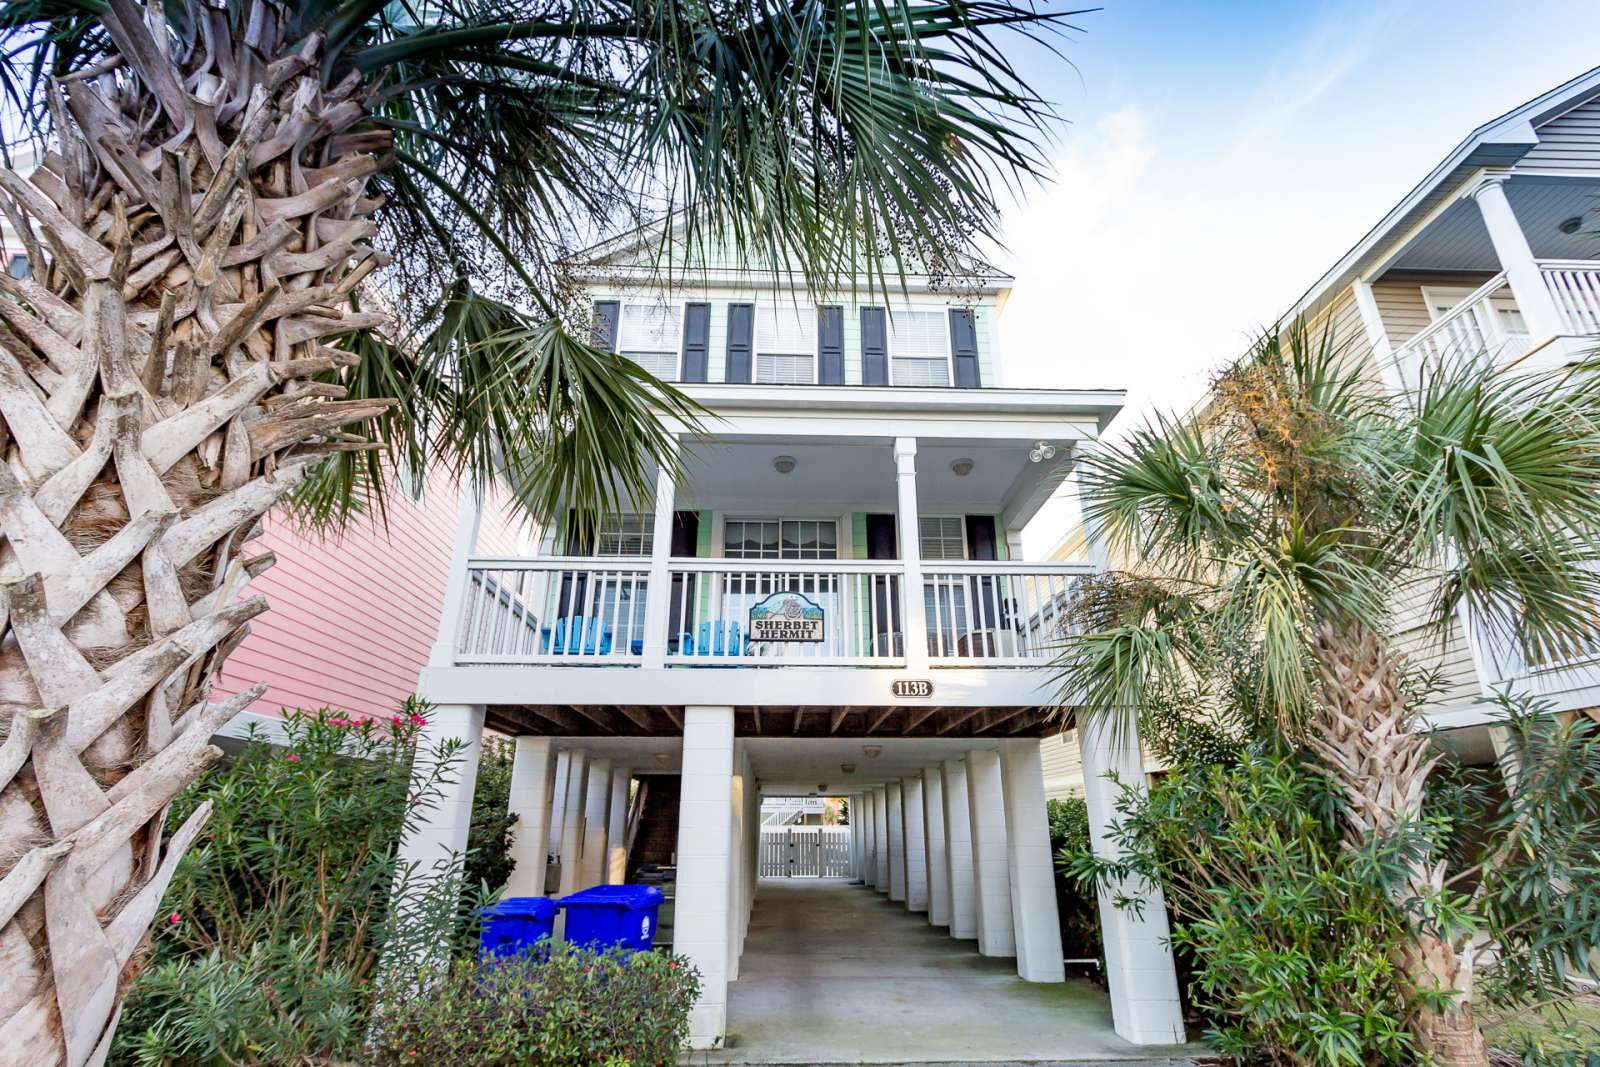 Surfside Beach Vacation Al Sherbet Hermit Large Luxury Home W Private Pool Just 75 Steps To Myrtle South On